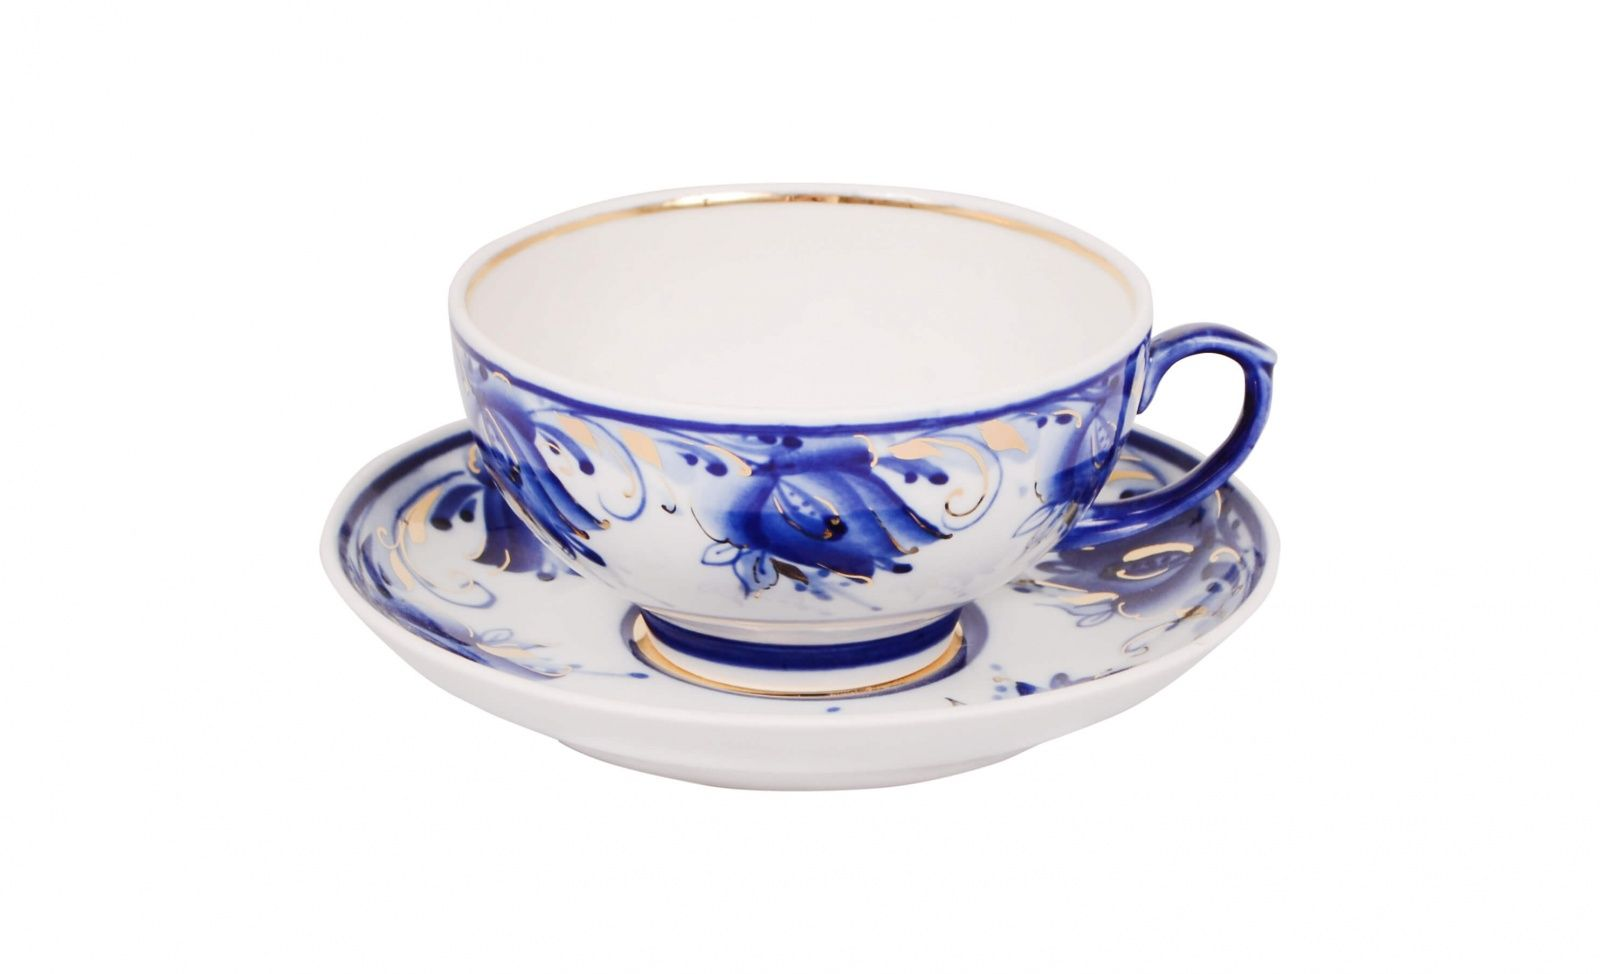 Dulevo porcelain / Tea cup and saucer set, 12 pcs., 220 ml Ruby Blue tulips Gold